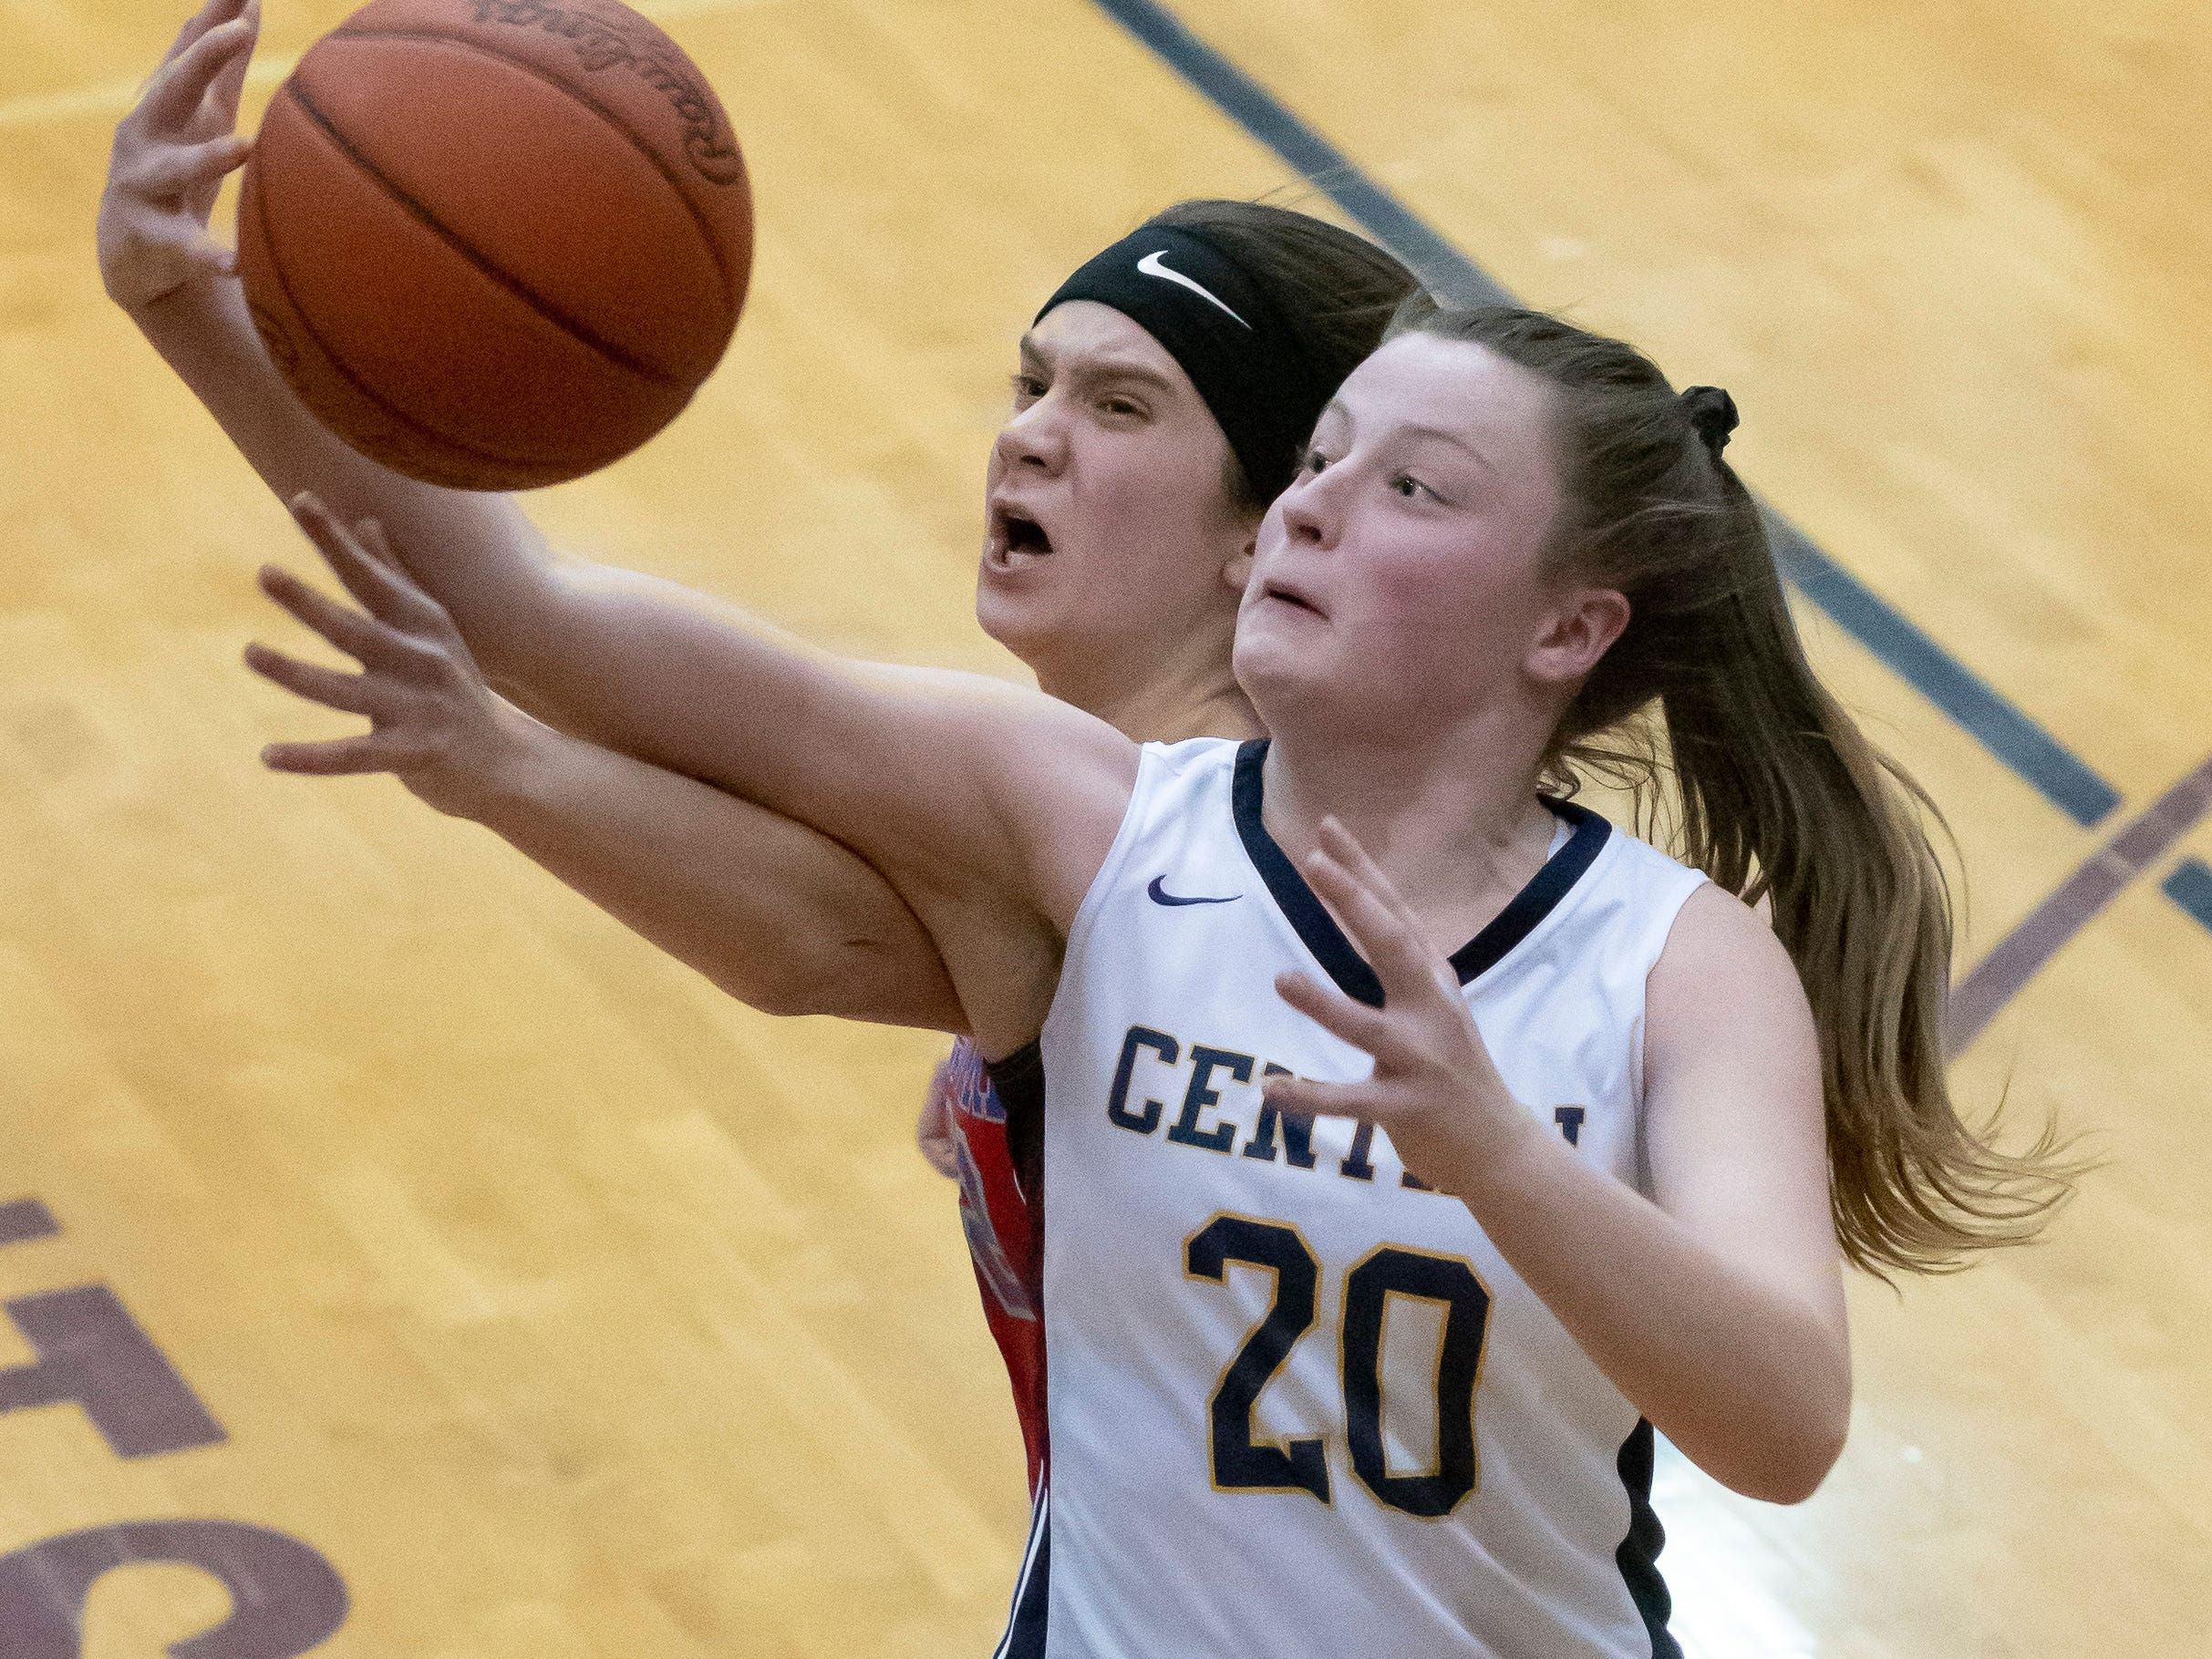 Walled Lake Western forward Lia Krawiec, left, and Walled Lake Central's Isabelle Plautz battle for a rebound in the second half.